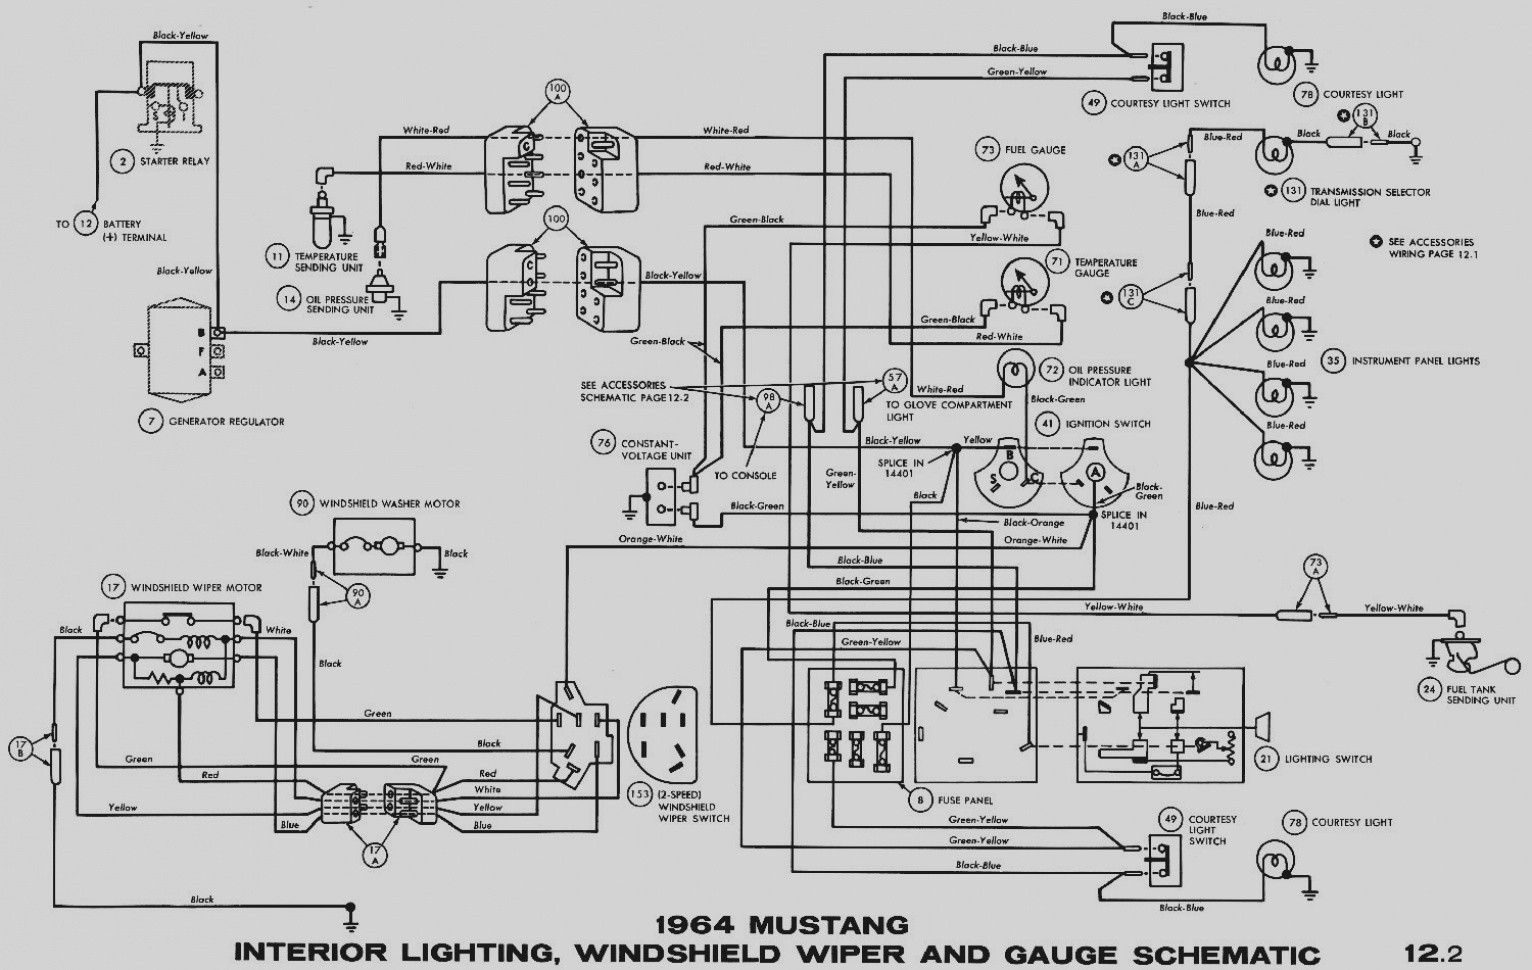 light switch wiring diagram 1991 mustang custom wiring diagram u2022 rh littlewaves co 1965 mustang alternator wiring diagram 1965 mustang ignition wiring diagram